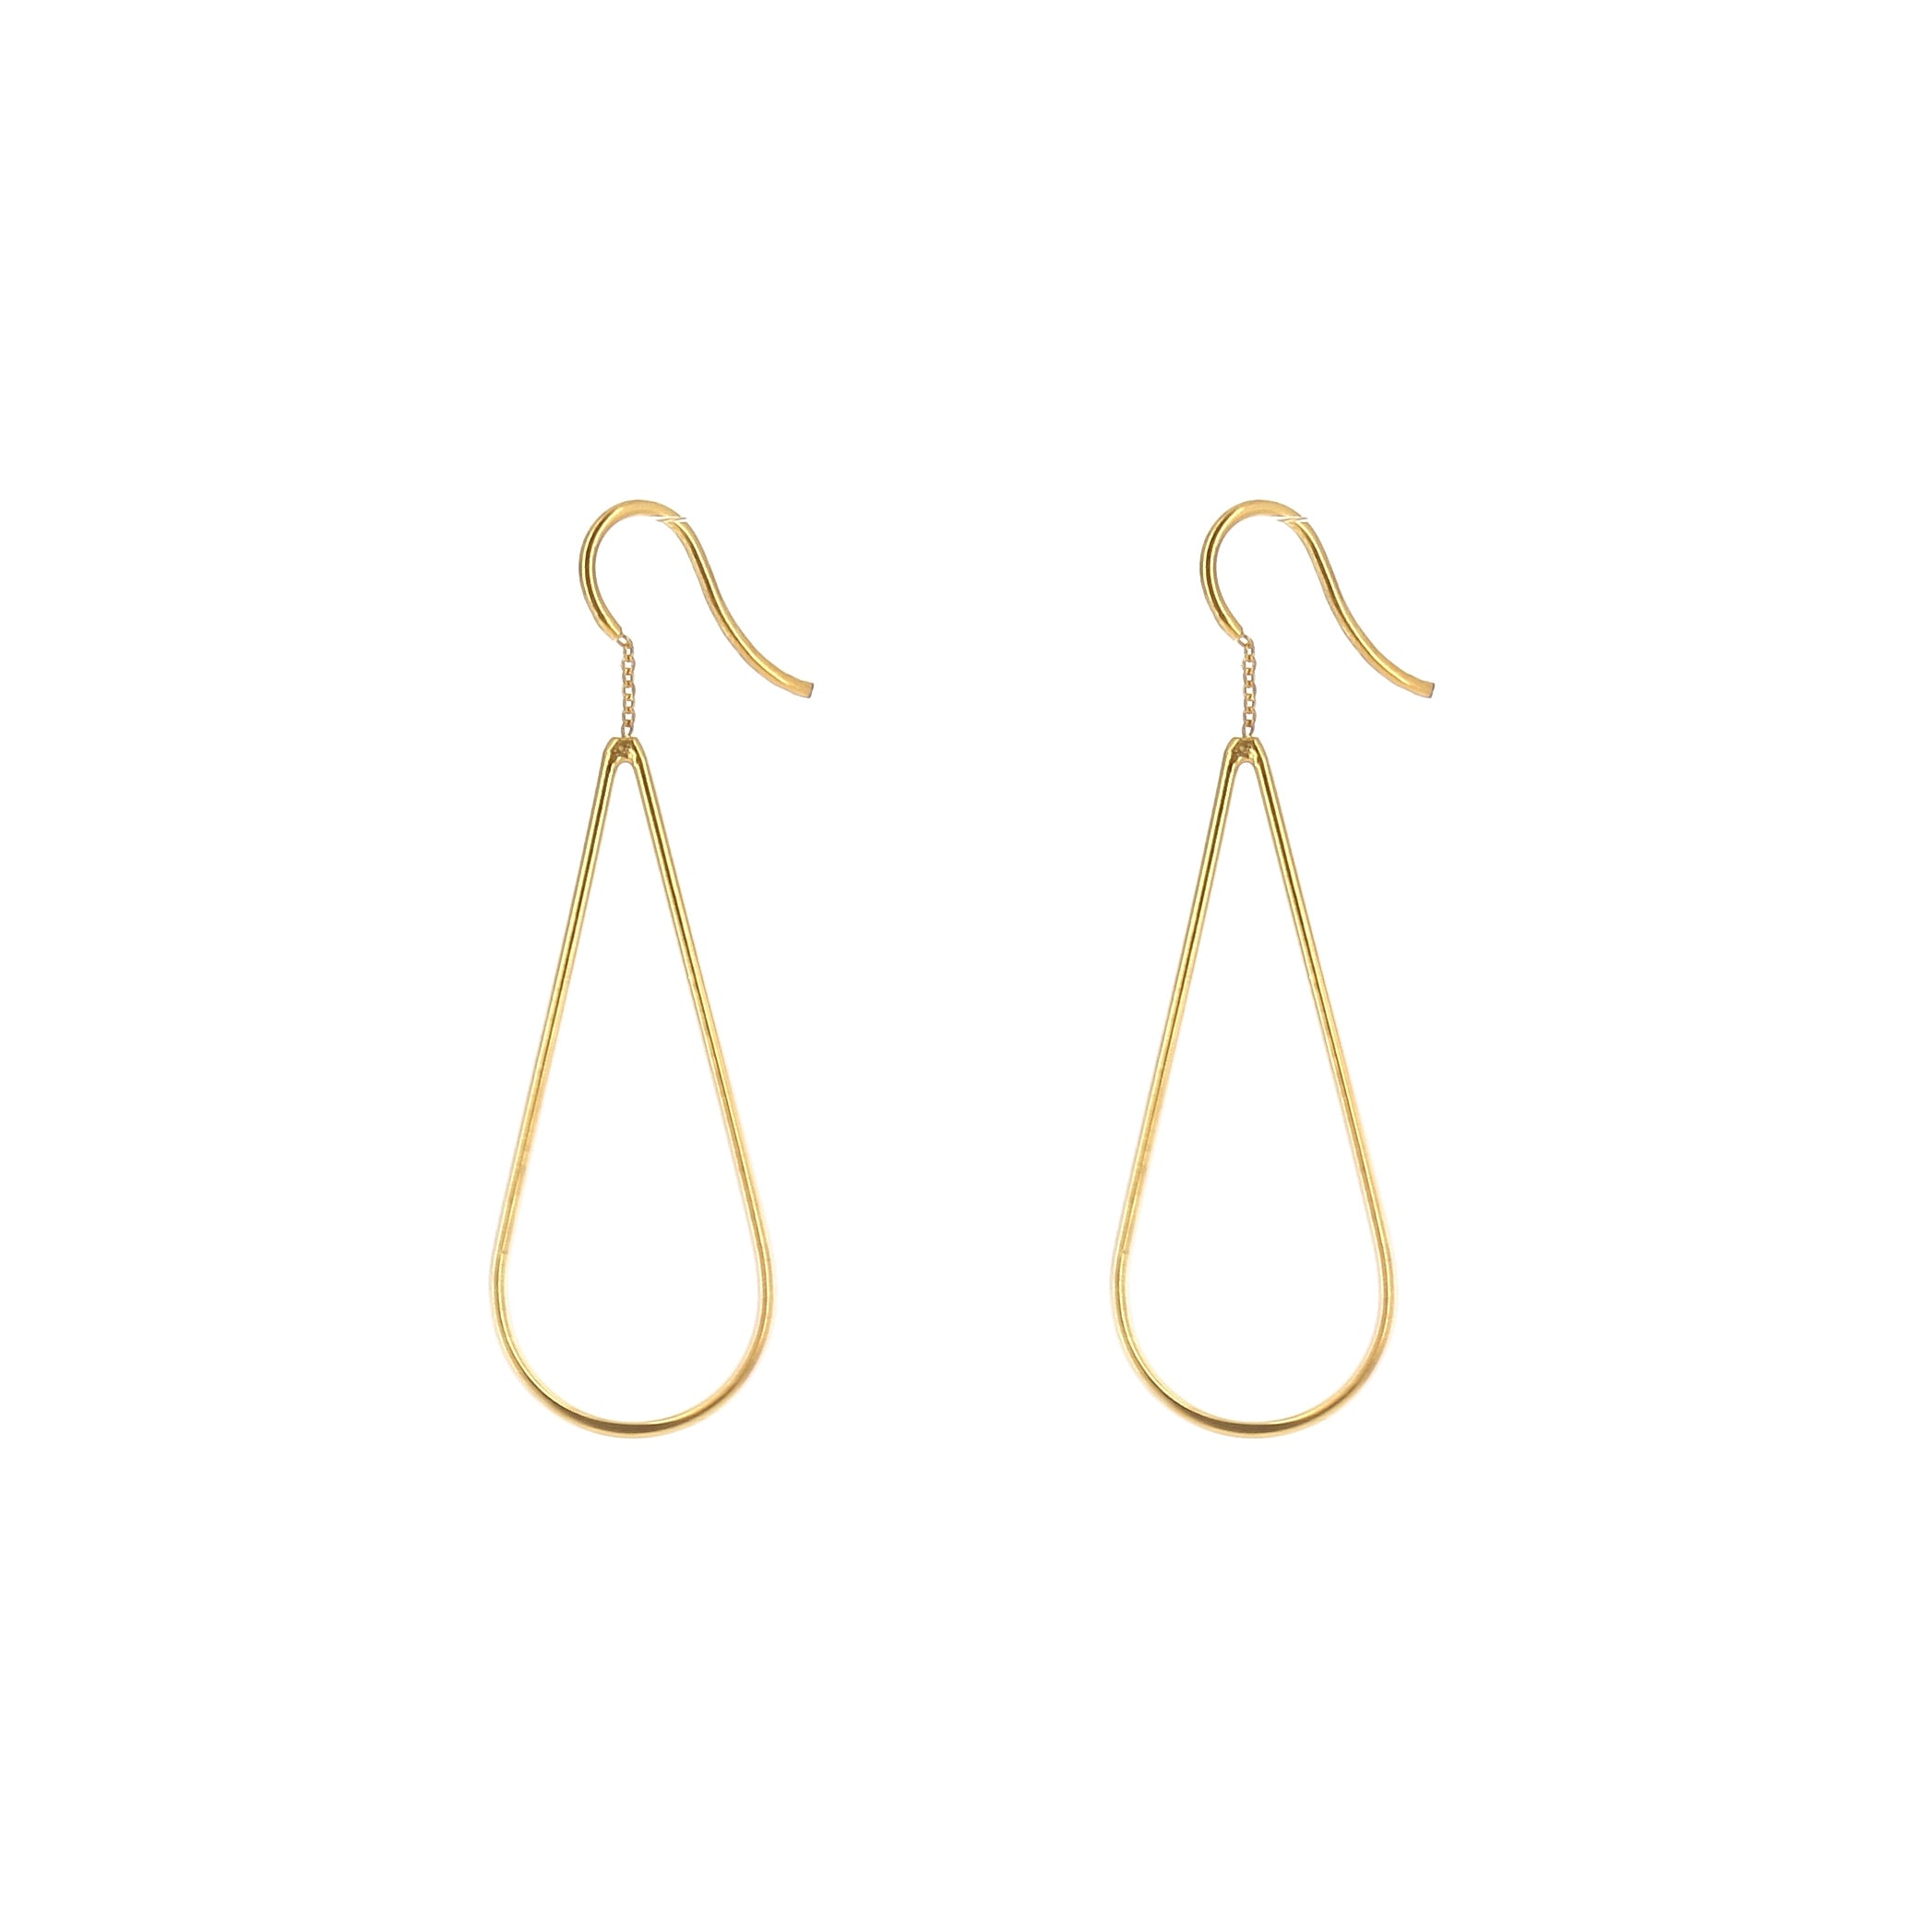 Aurore Havenne Gold Plated Silver Raindrops Earrings minimalist bijou simple elegant present bestseller